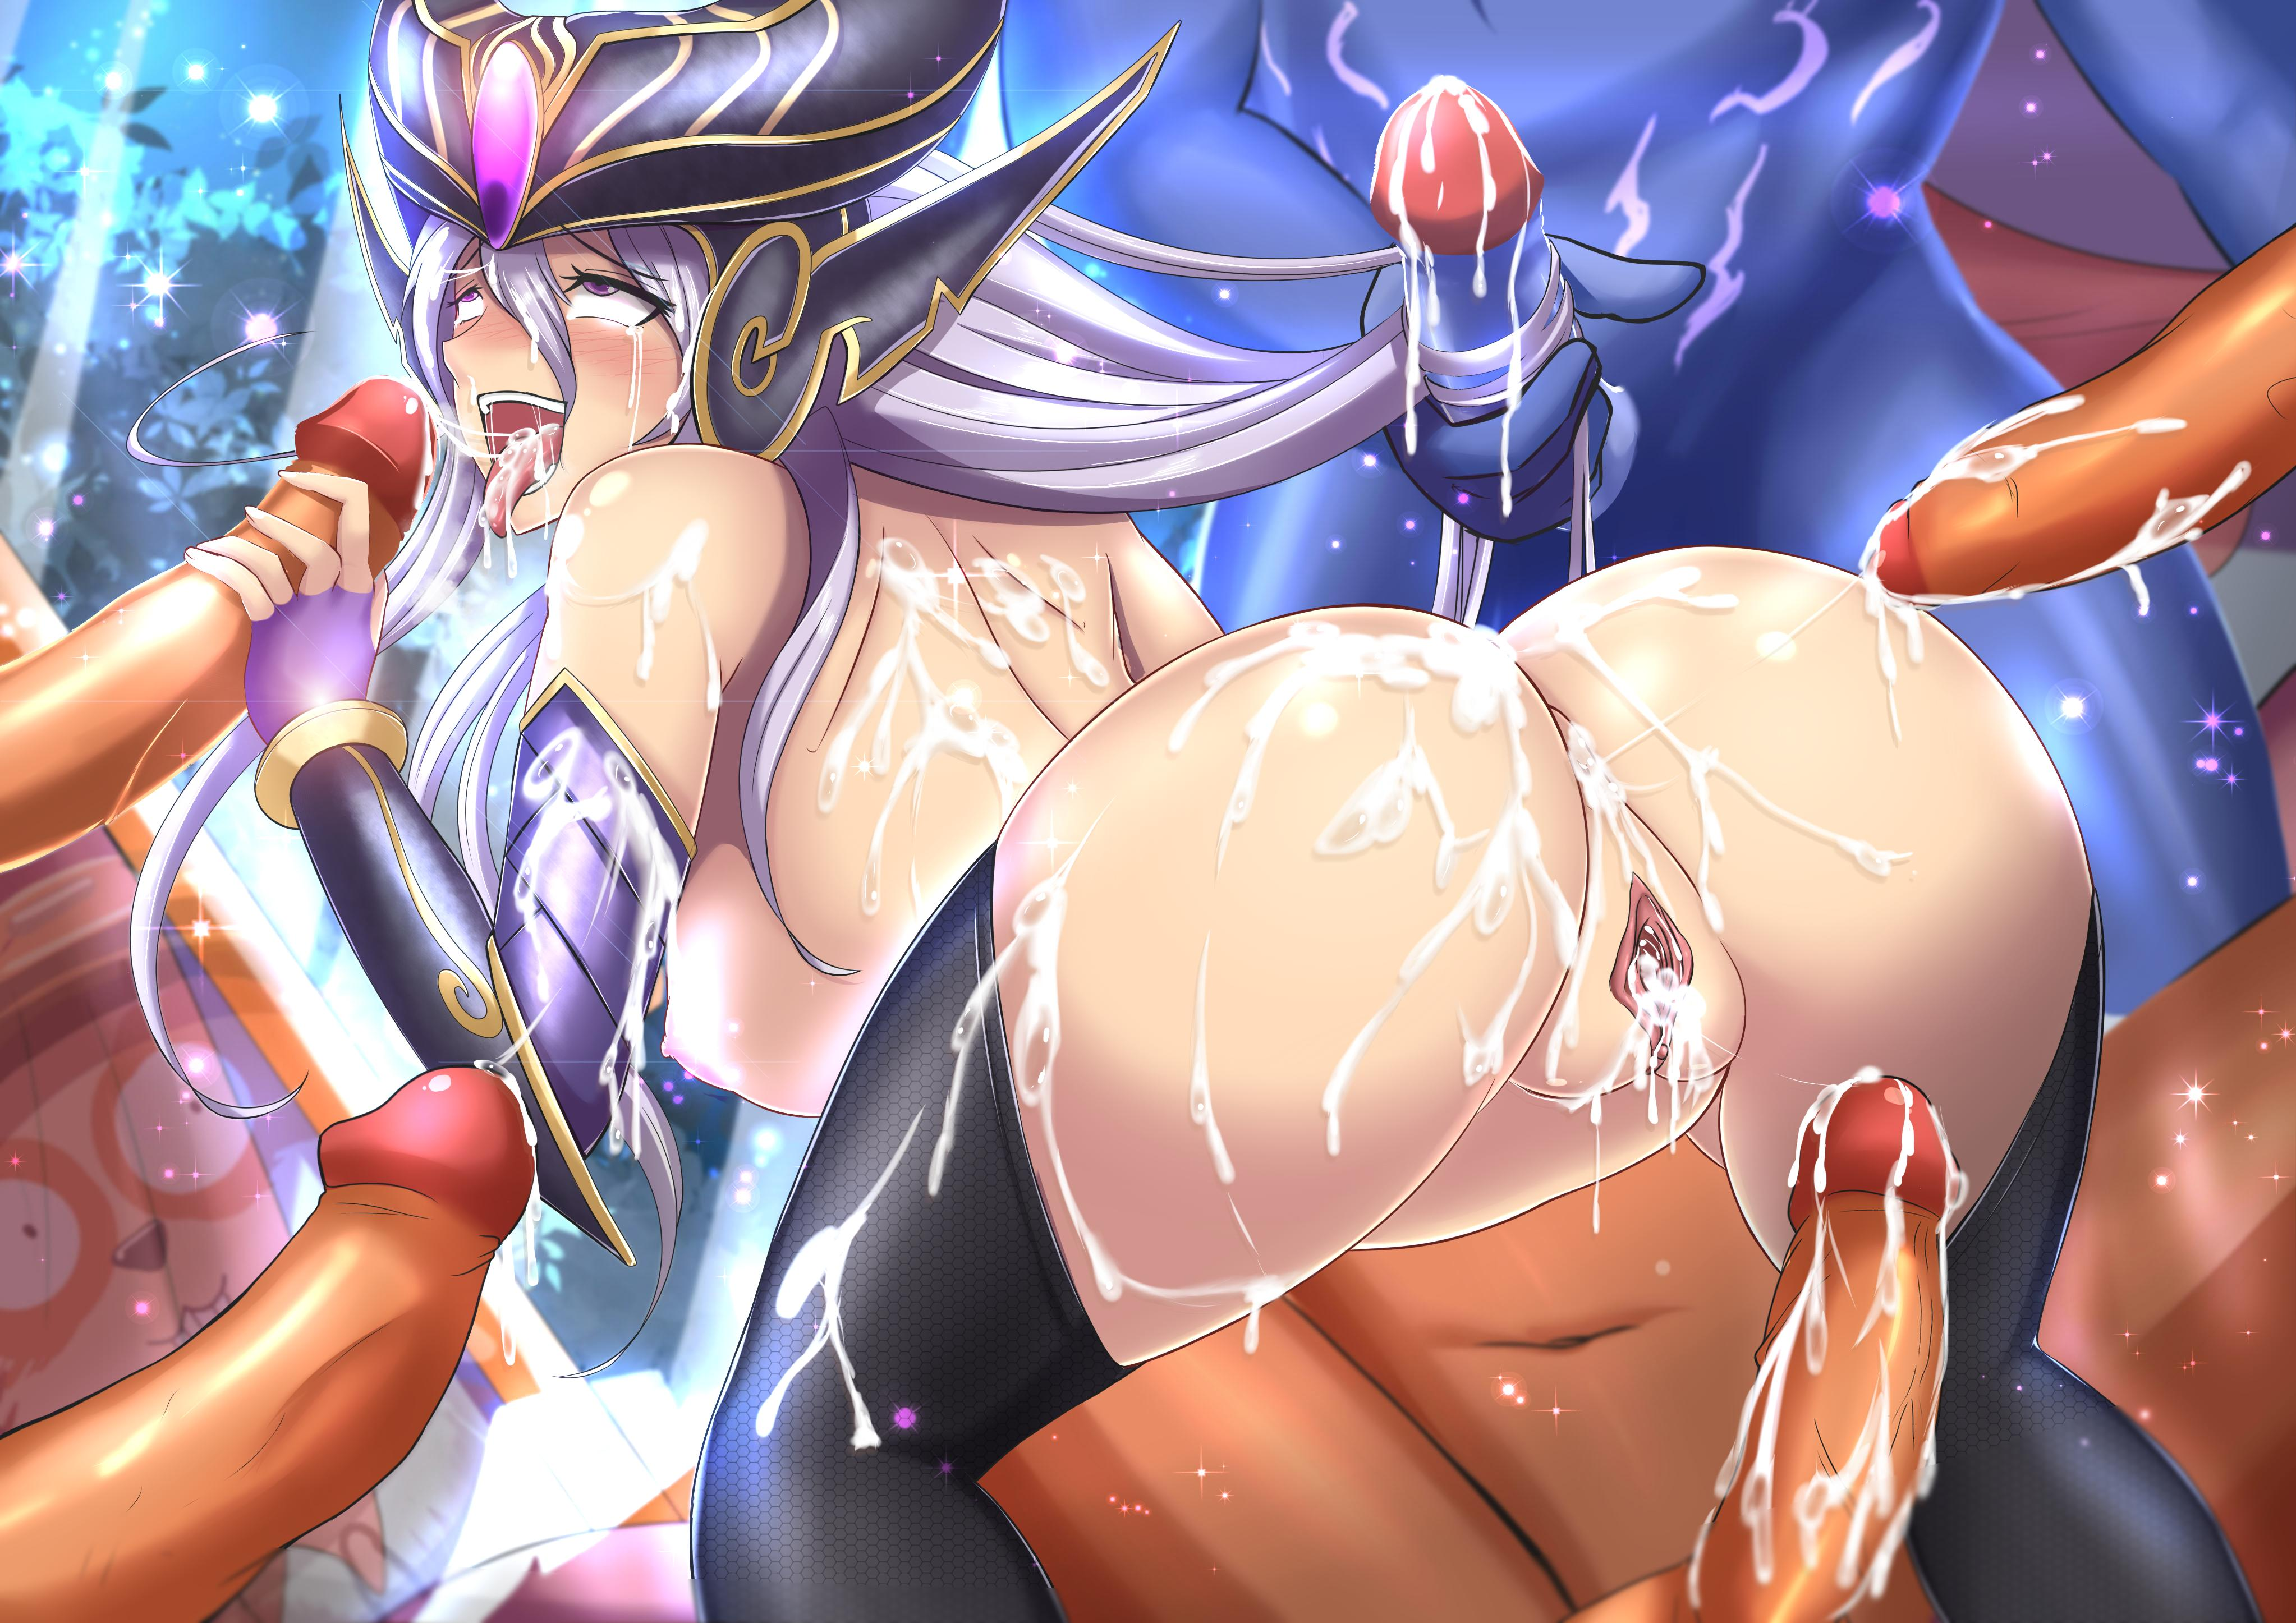 Home The Biggest League of Legends Hentai Database 12000 Hentai Pictures 20 Hentai Videos10 Flash Games 100 English Comics Doujins Come Here For The